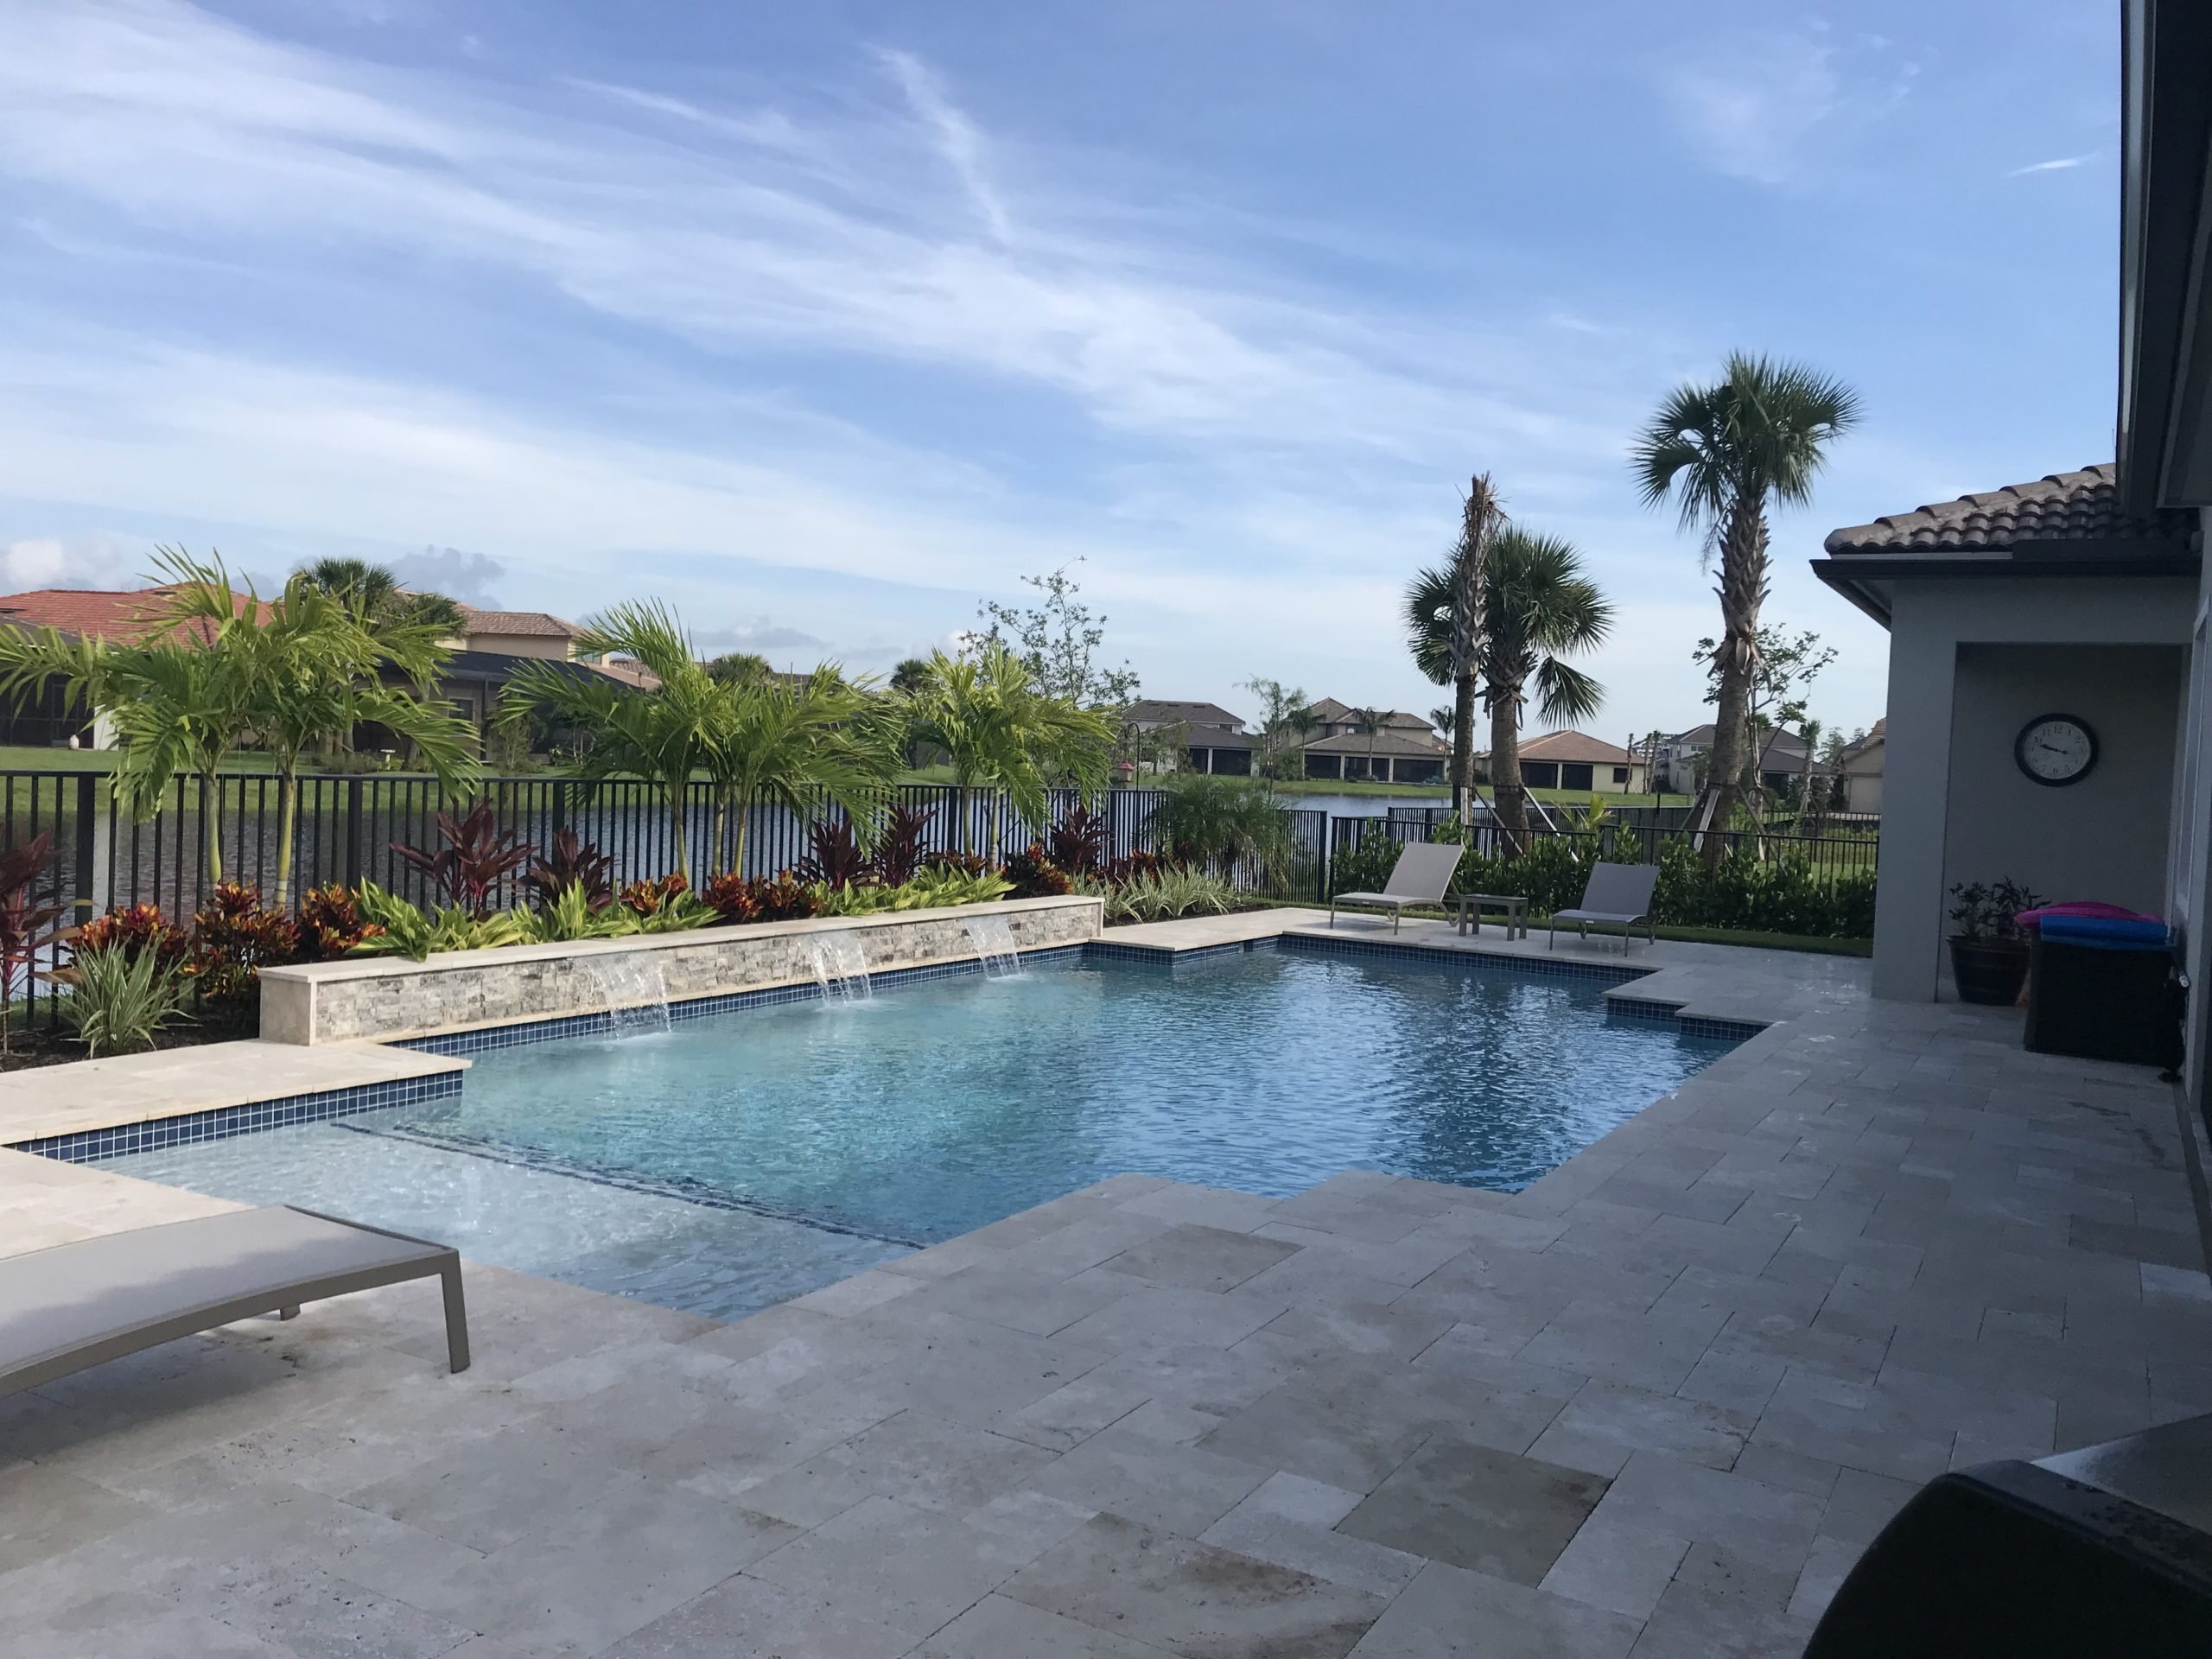 rhr pools of jupiter fl custom pool with oversized shelf and water feature